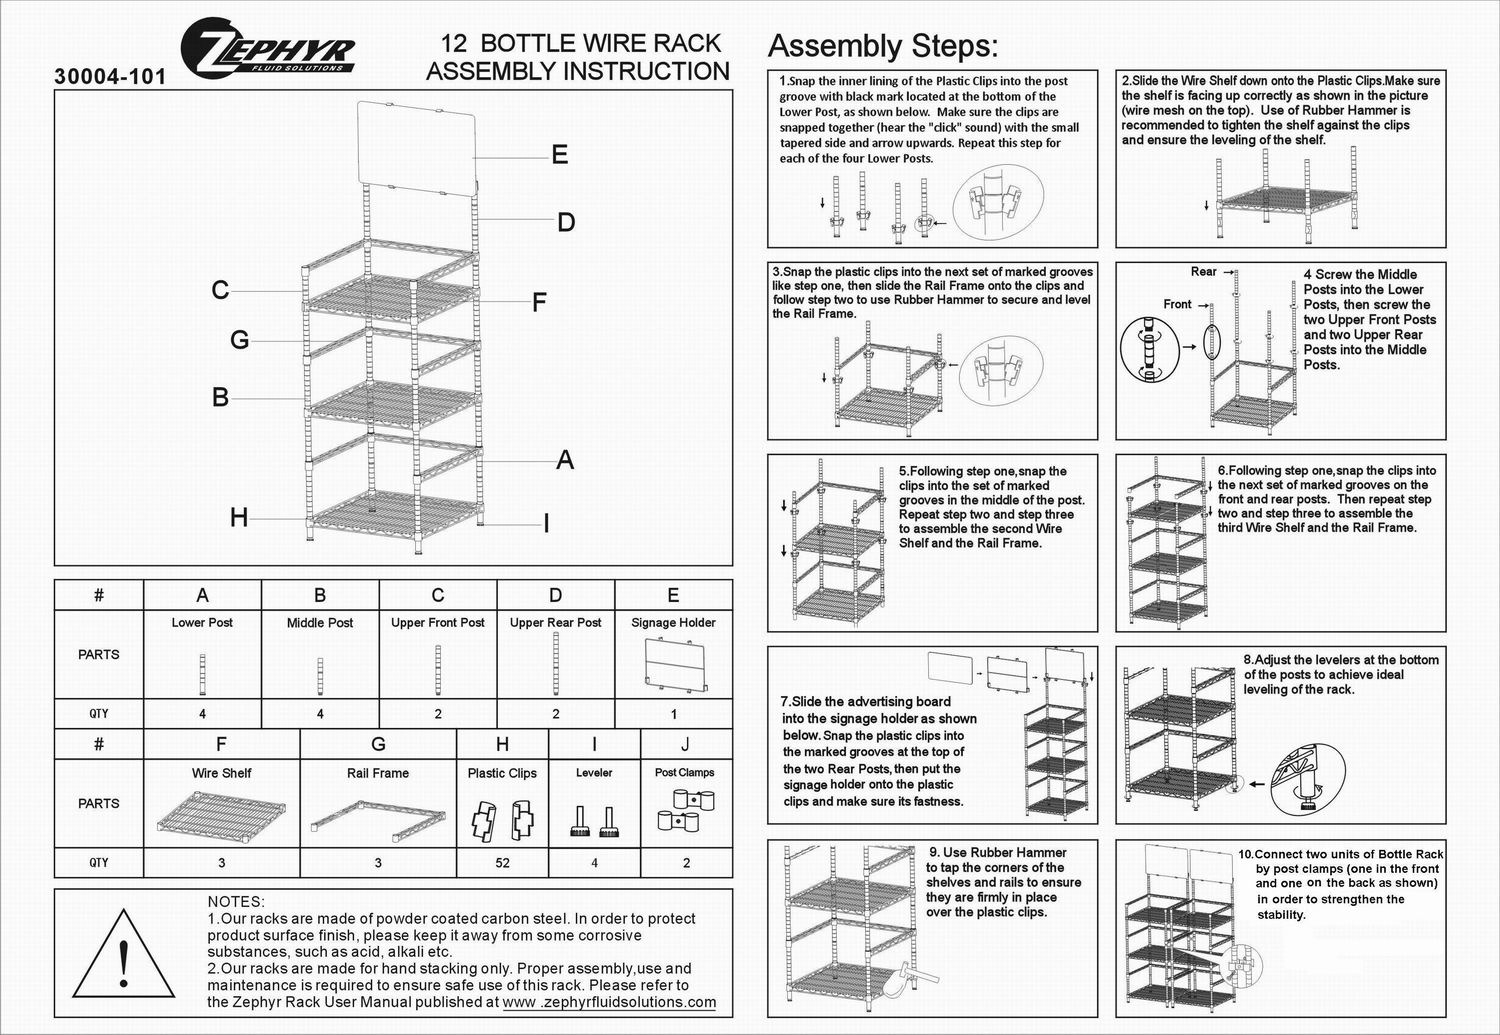 12-bottle-wire-rack-assembly-instructions.jpg